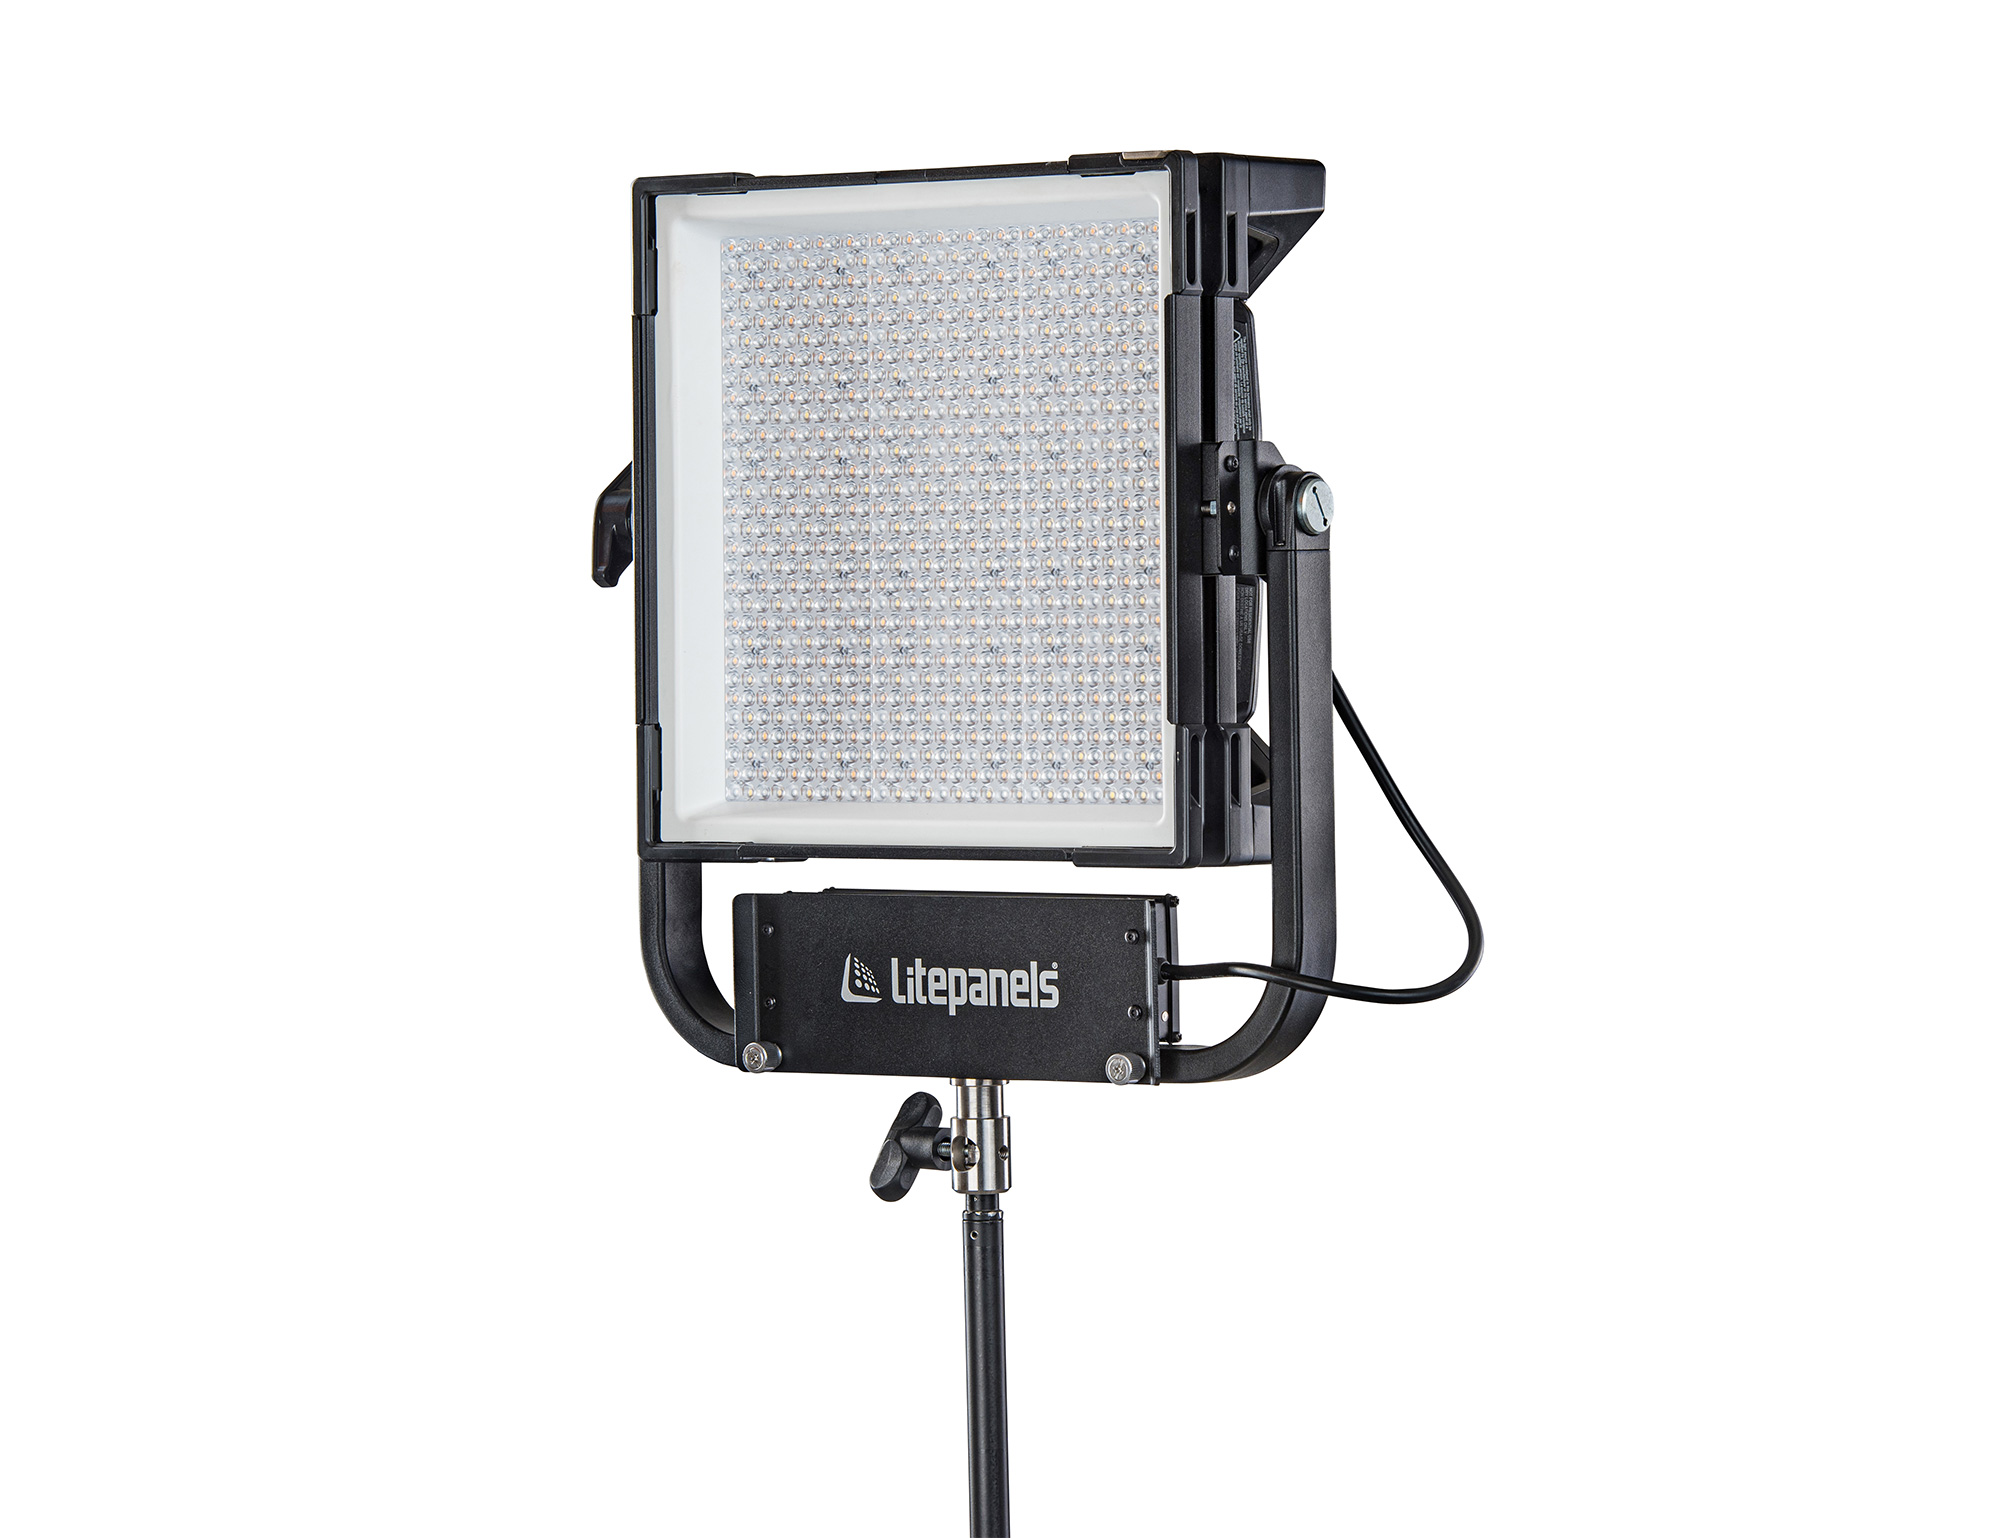 New Litepanels Gemini 1x1 Hard RGBWW LED Panel - brightest 1x1 LED panel in its class